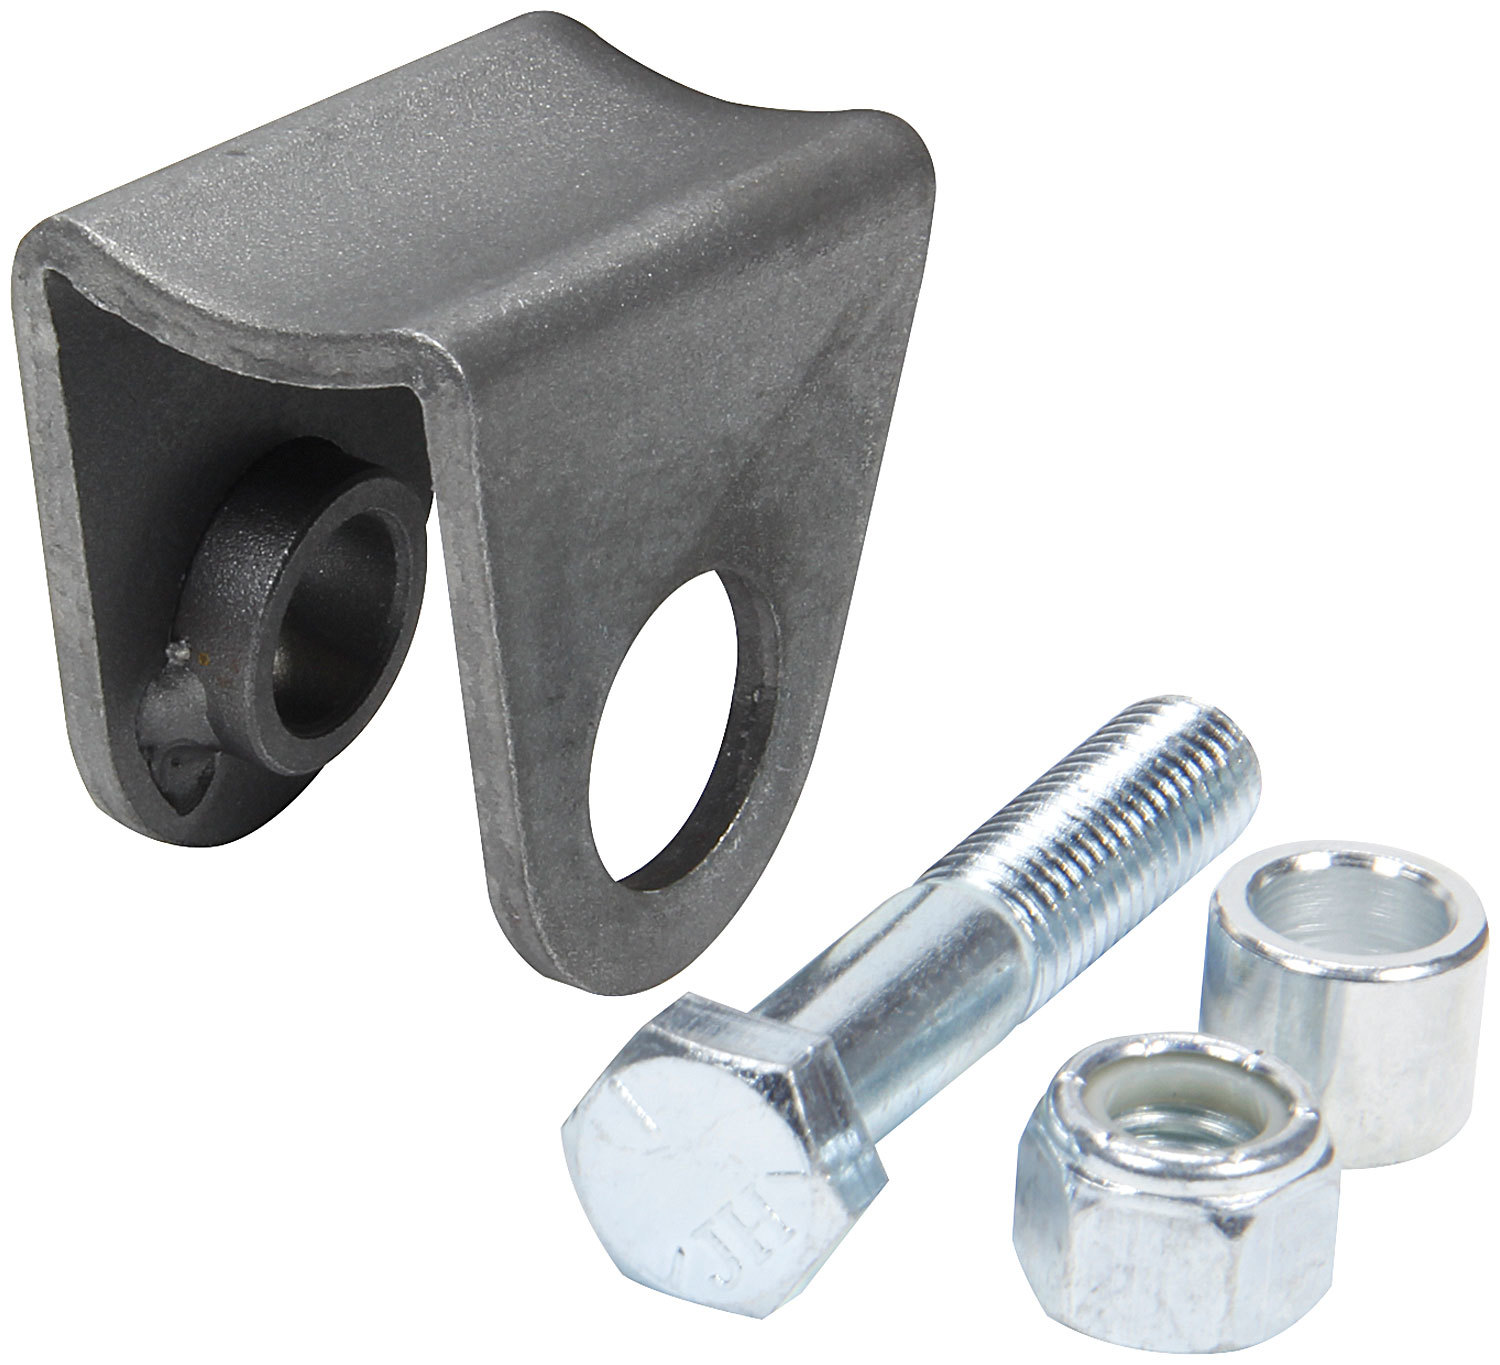 Allstar Performance 60107 Shock Mount, Narrow, Weld-On, Radius Mount, Straight, Steel, Natural, Universal, Each